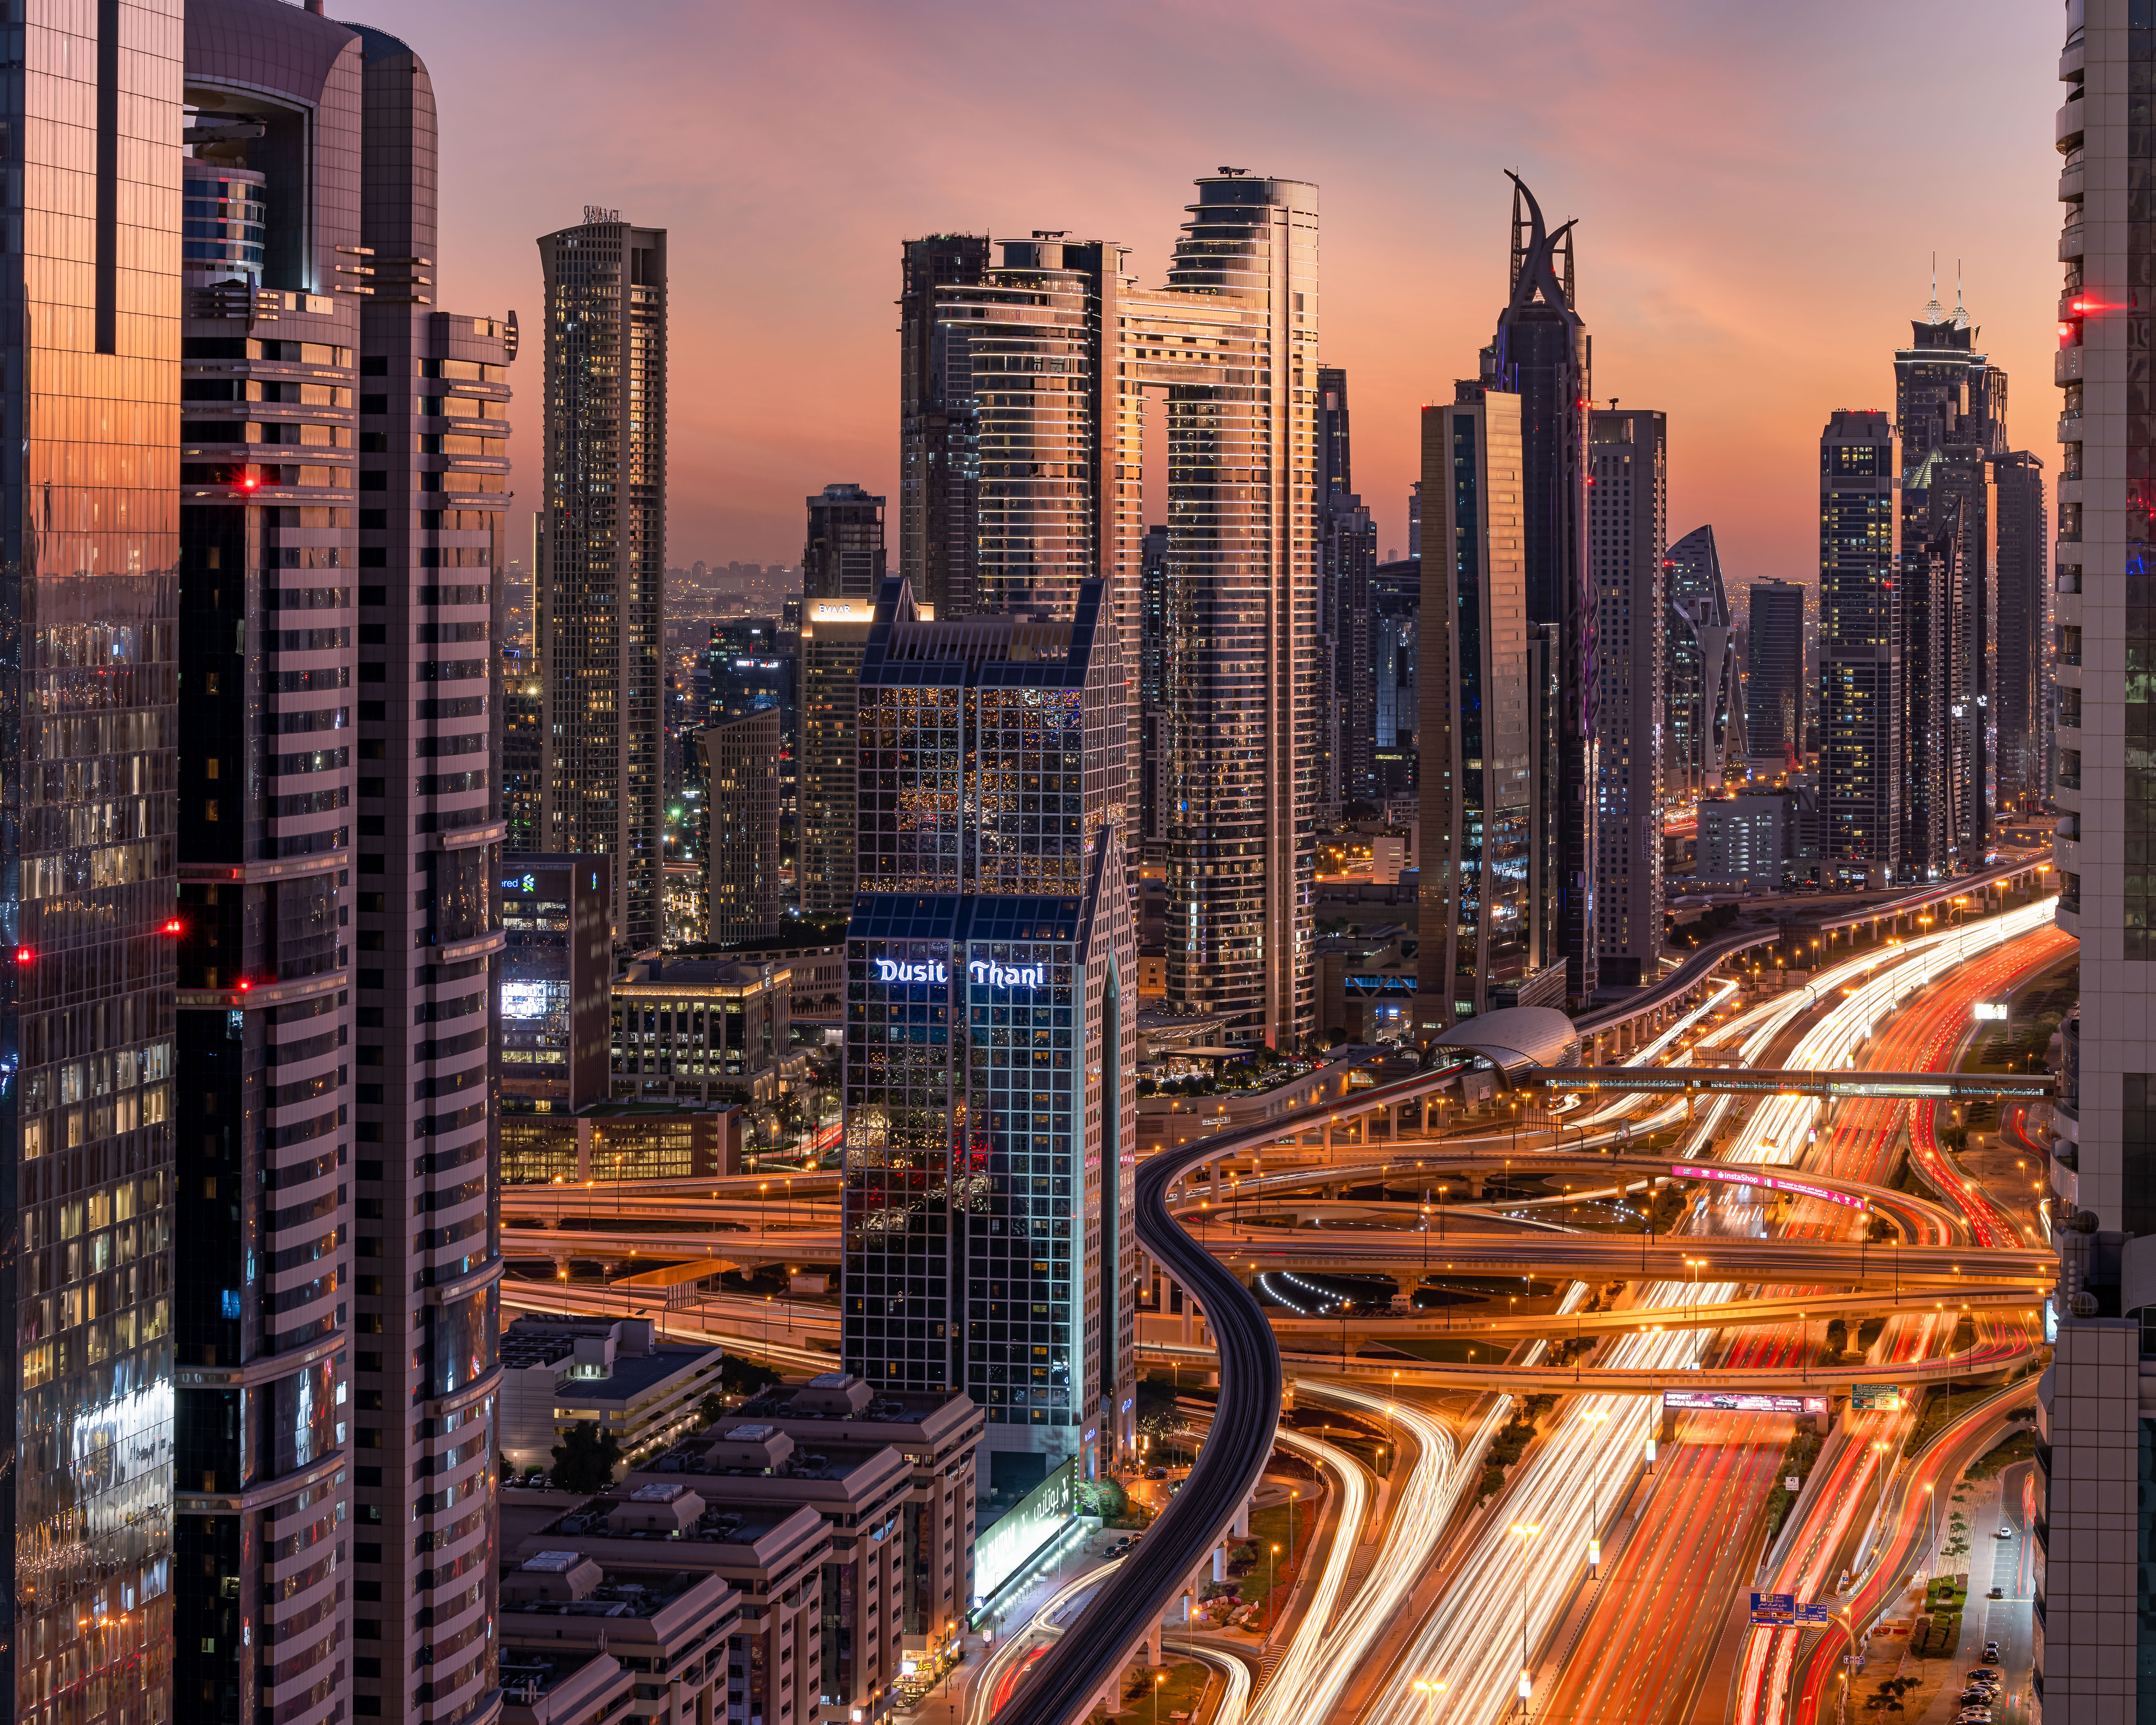 That last light hitting the buildings on Sheikh Zayed Road.